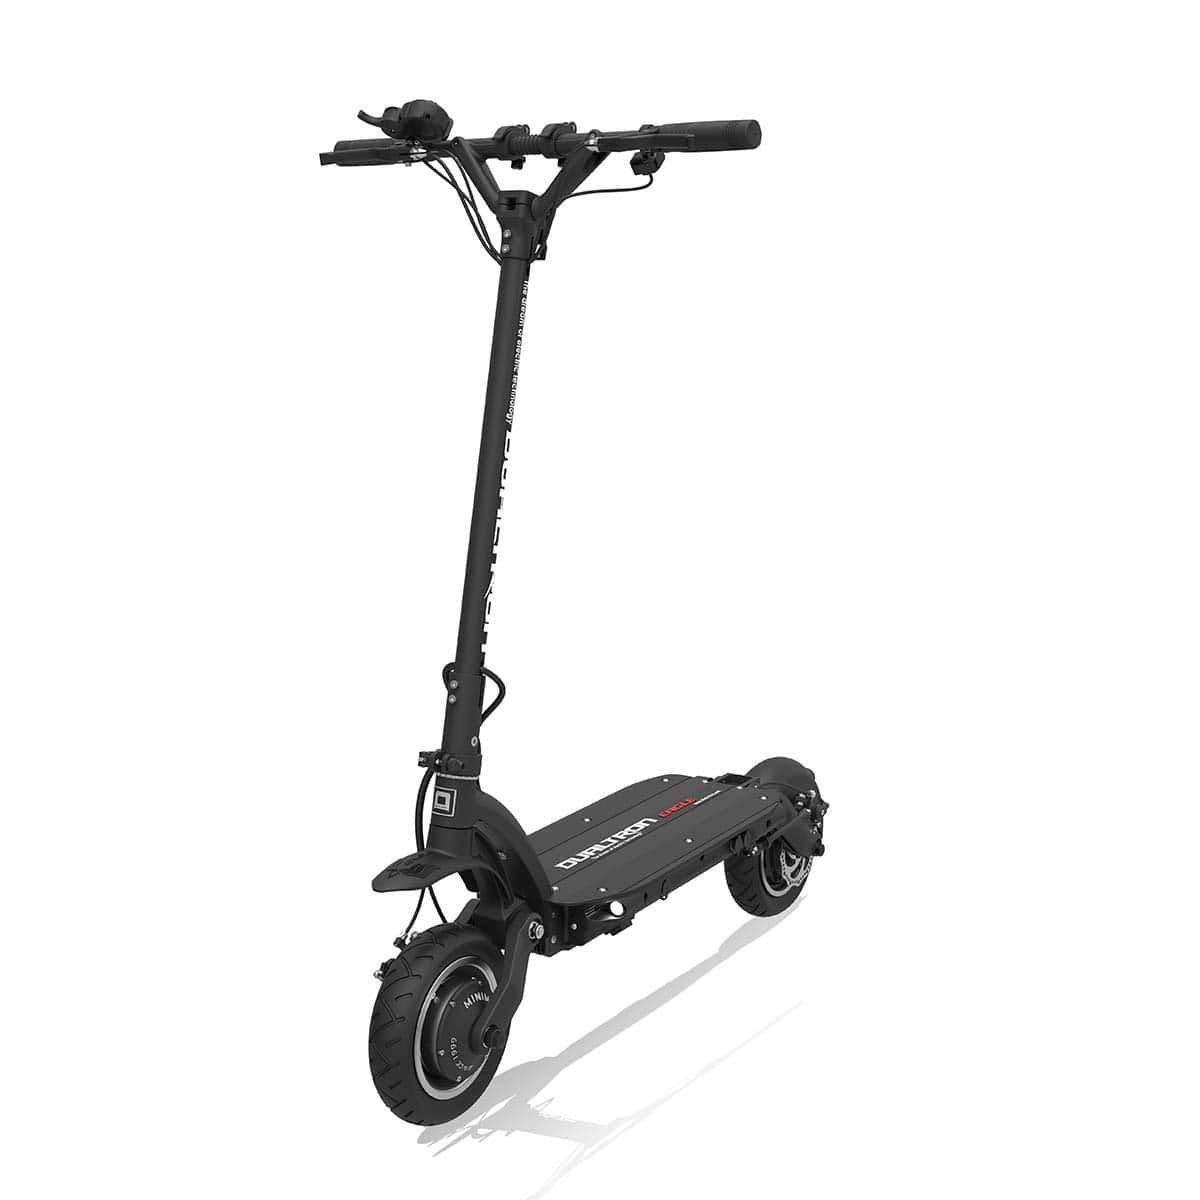 Dualtron Eagle - 3600w Electric Scooter - Beyond Electrek